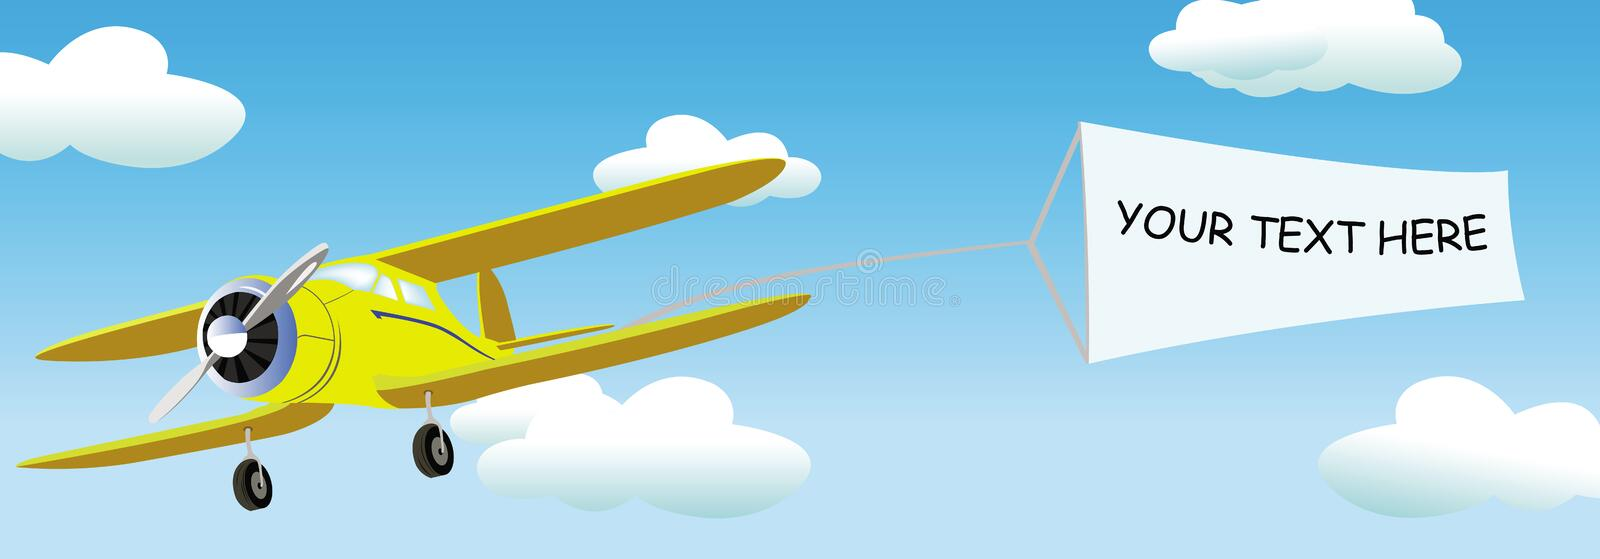 Download Plane With Blank Banner For Your Commercial/text Stock Vector - Image: 20714350